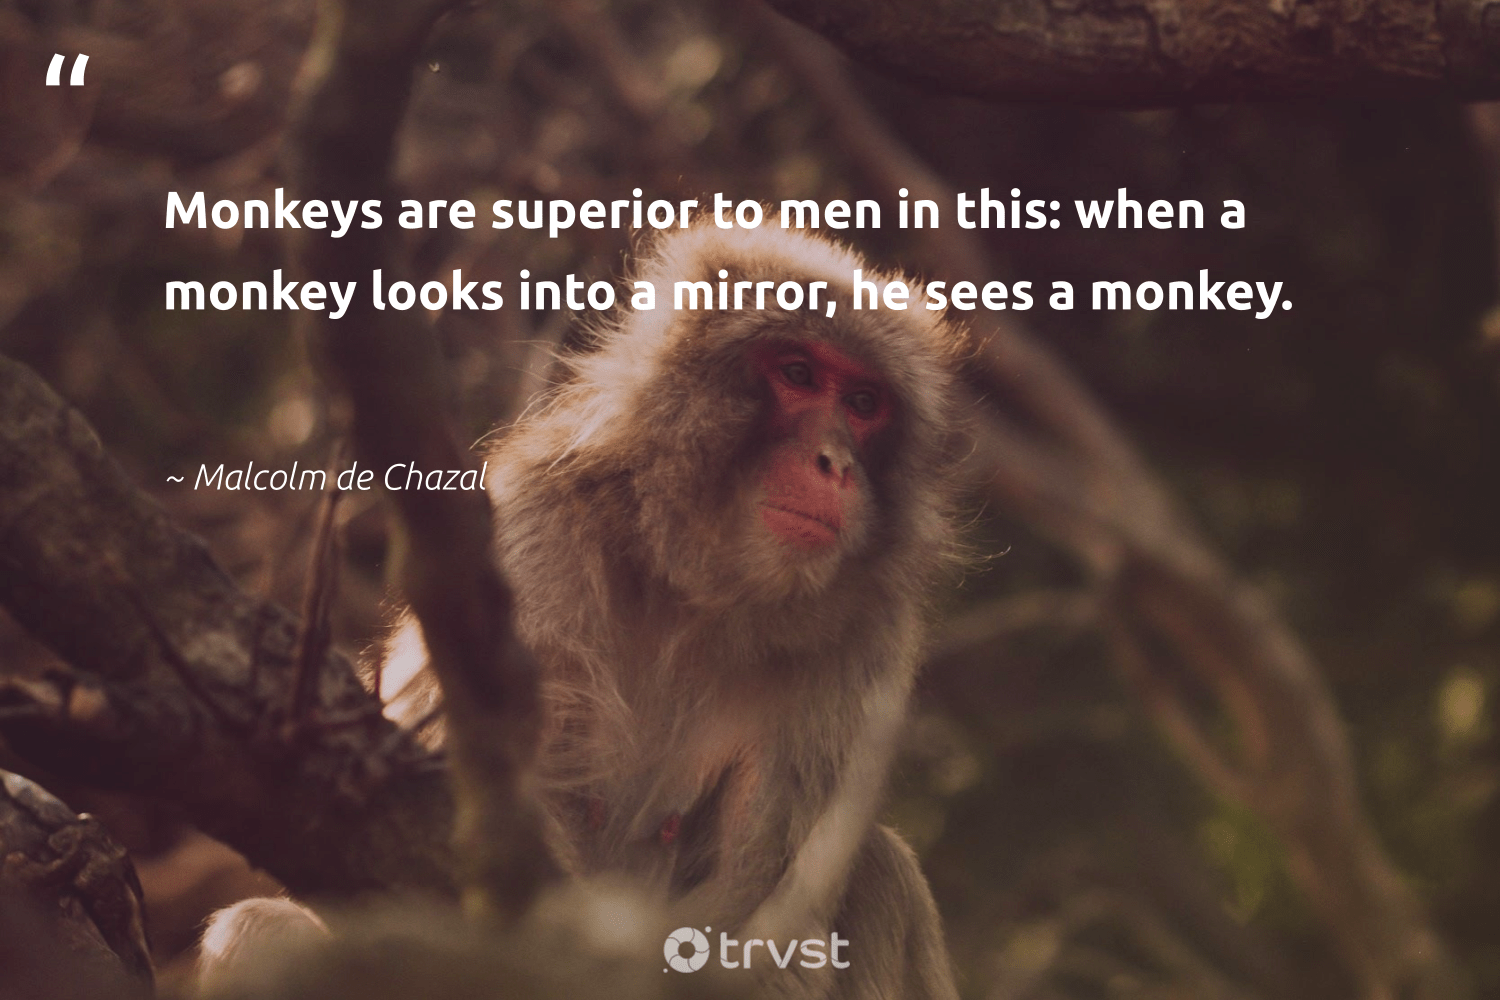 """Monkeys are superior to men in this: when a monkey looks into a mirror, he sees a monkey.""  - Malcolm de Chazal #trvst #quotes #monkey #monkeys #monkeylife #ecoconscious #perfectnature #takeaction #wild #beinspired #splendidanimals #socialimpact"